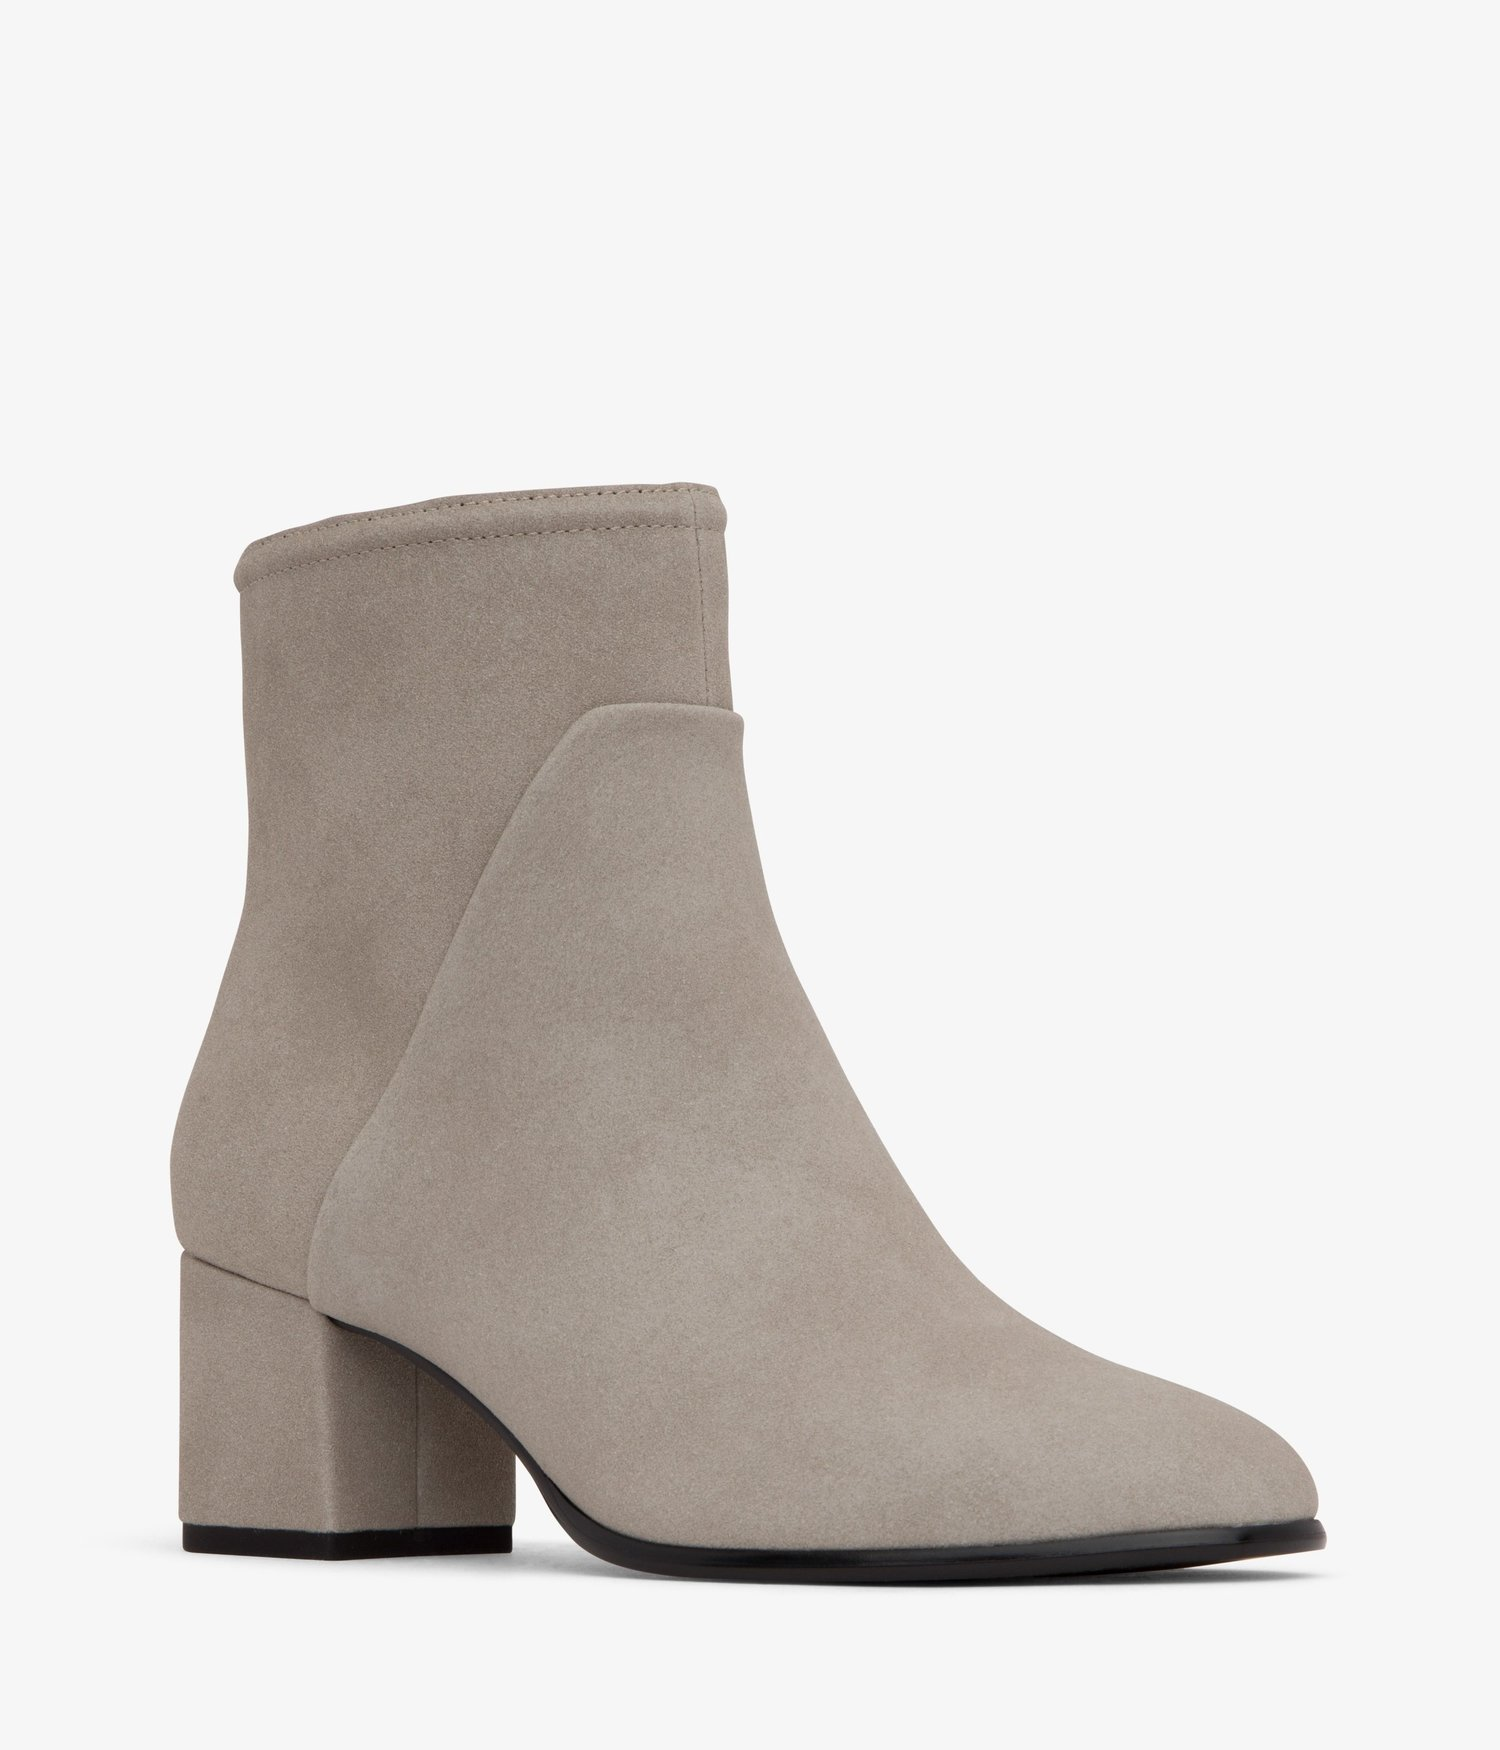 b6f34f088482c Step Into Fall With Style In These 10 Ethically-Made Vegan Boots